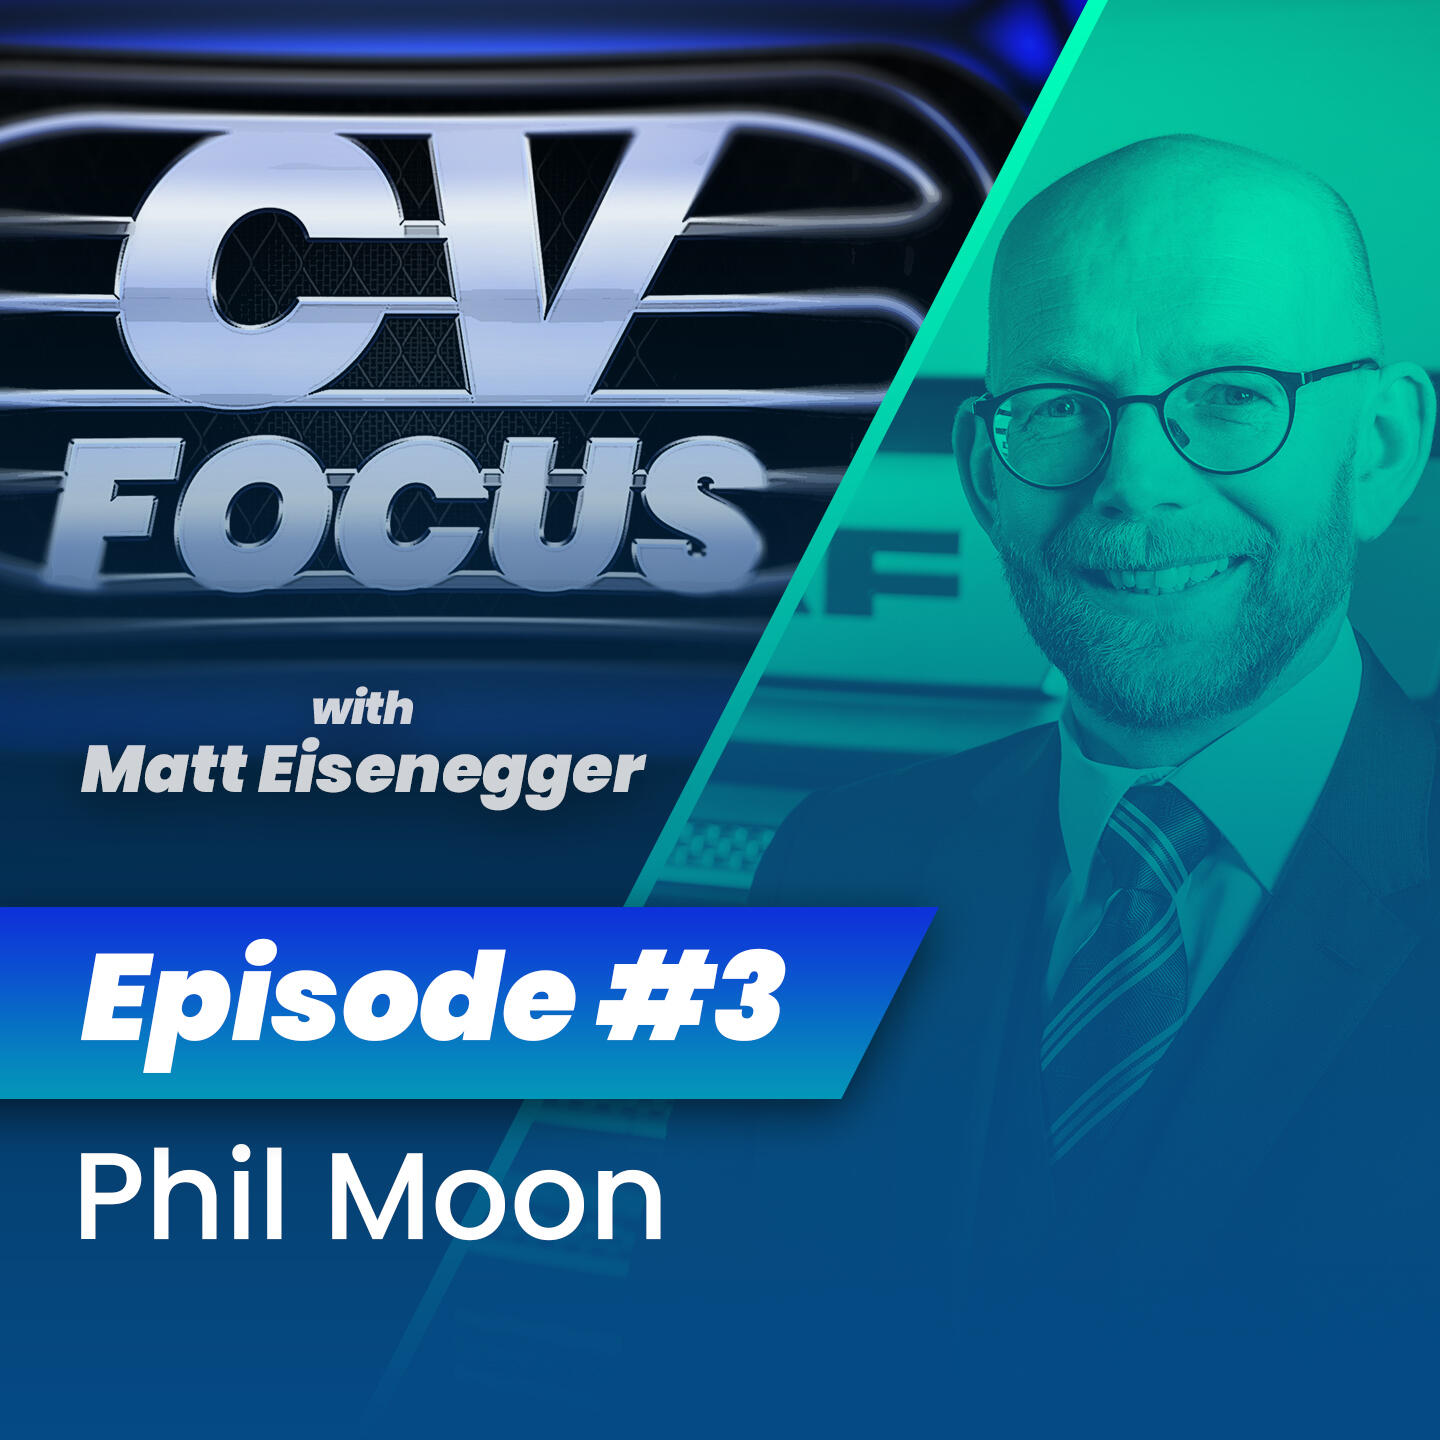 3: CV Focus episode 3 - Phil Moon